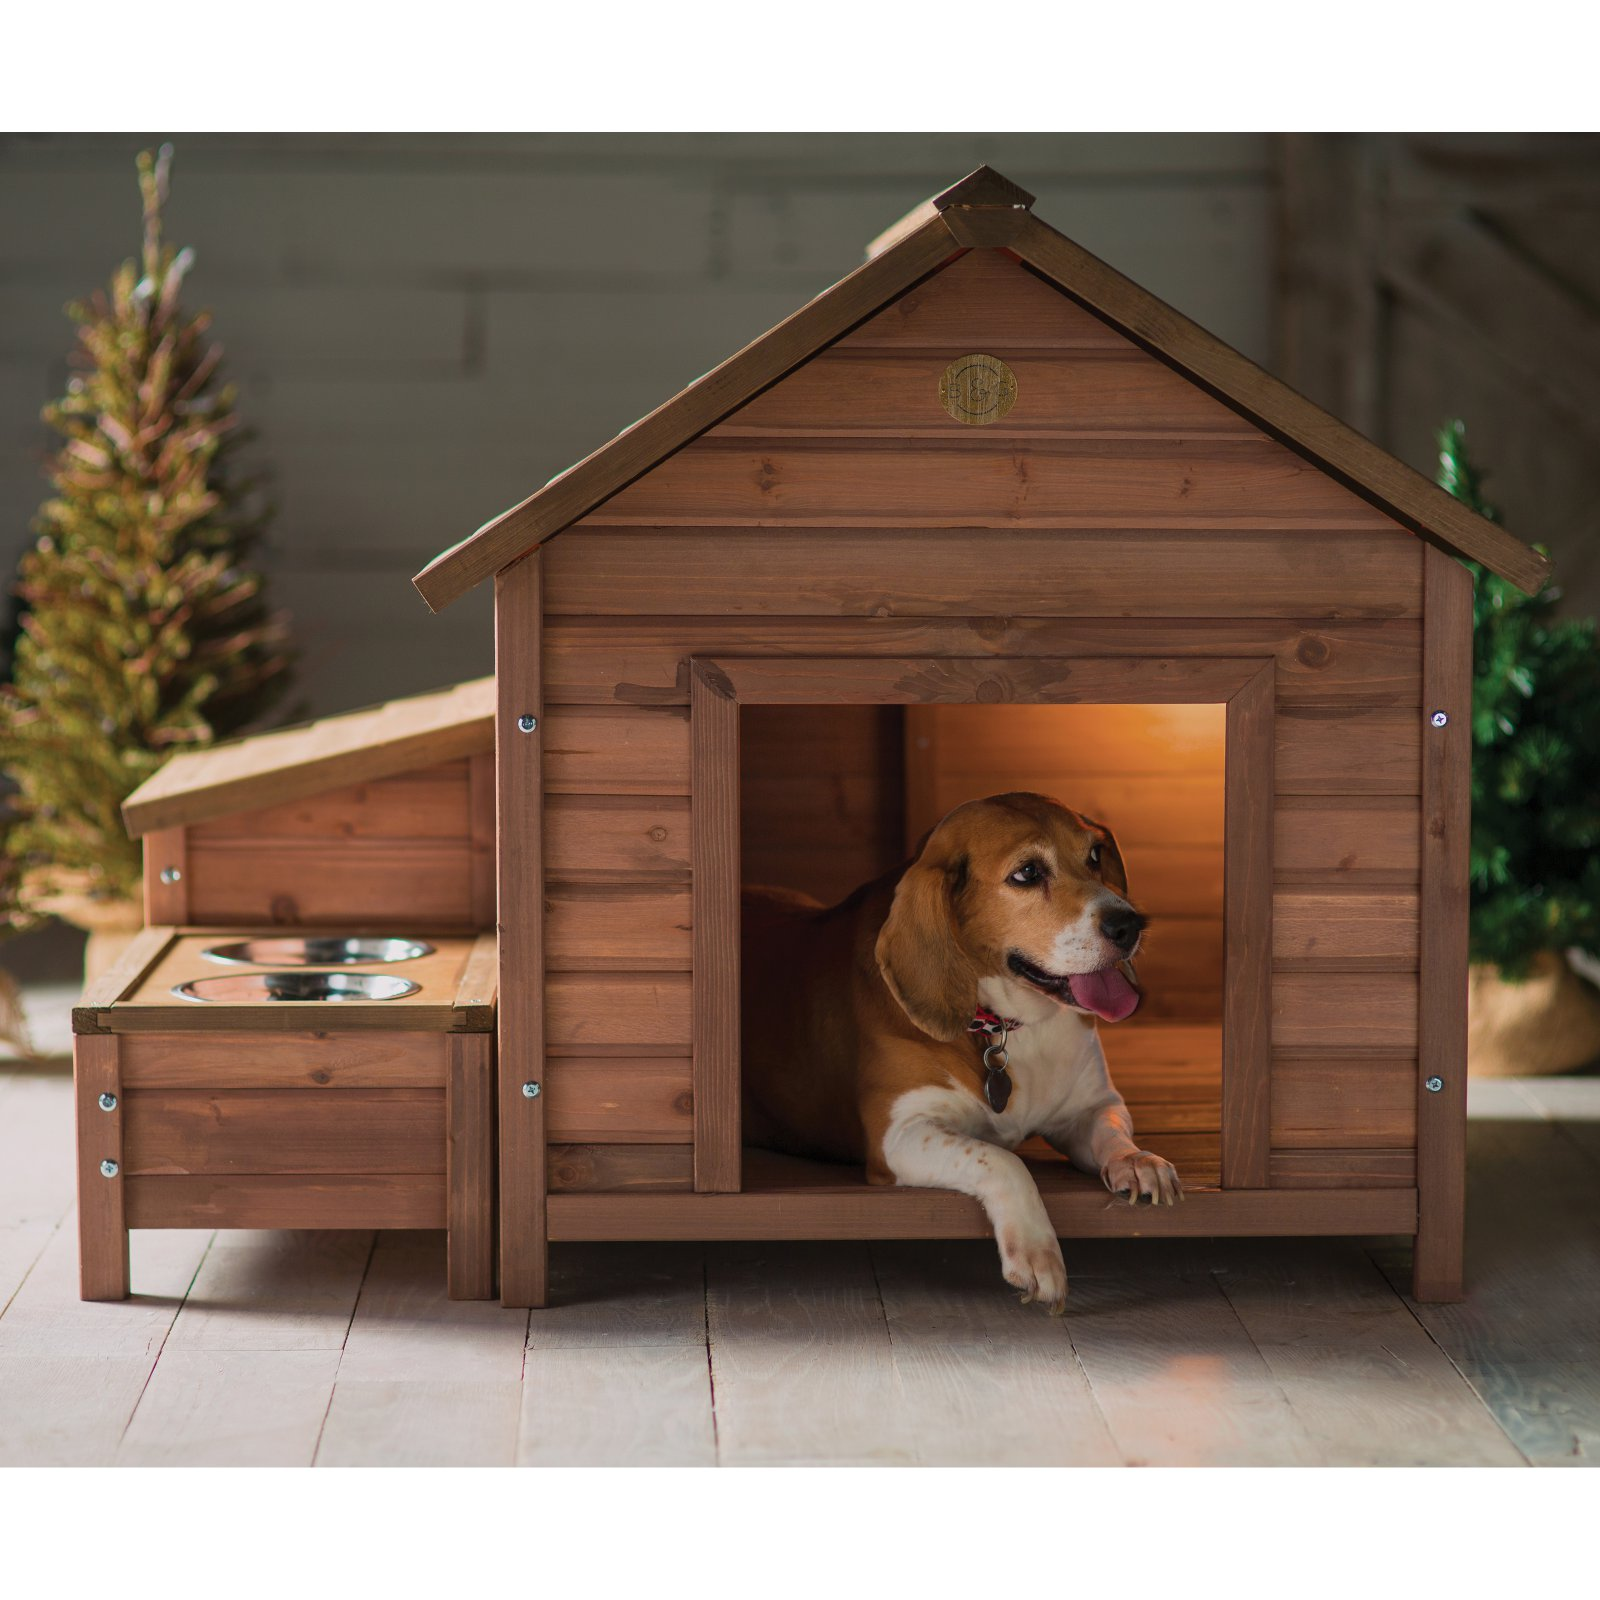 Boomer George A Frame Dog House With Food Bowl Tray And Storage Cubby